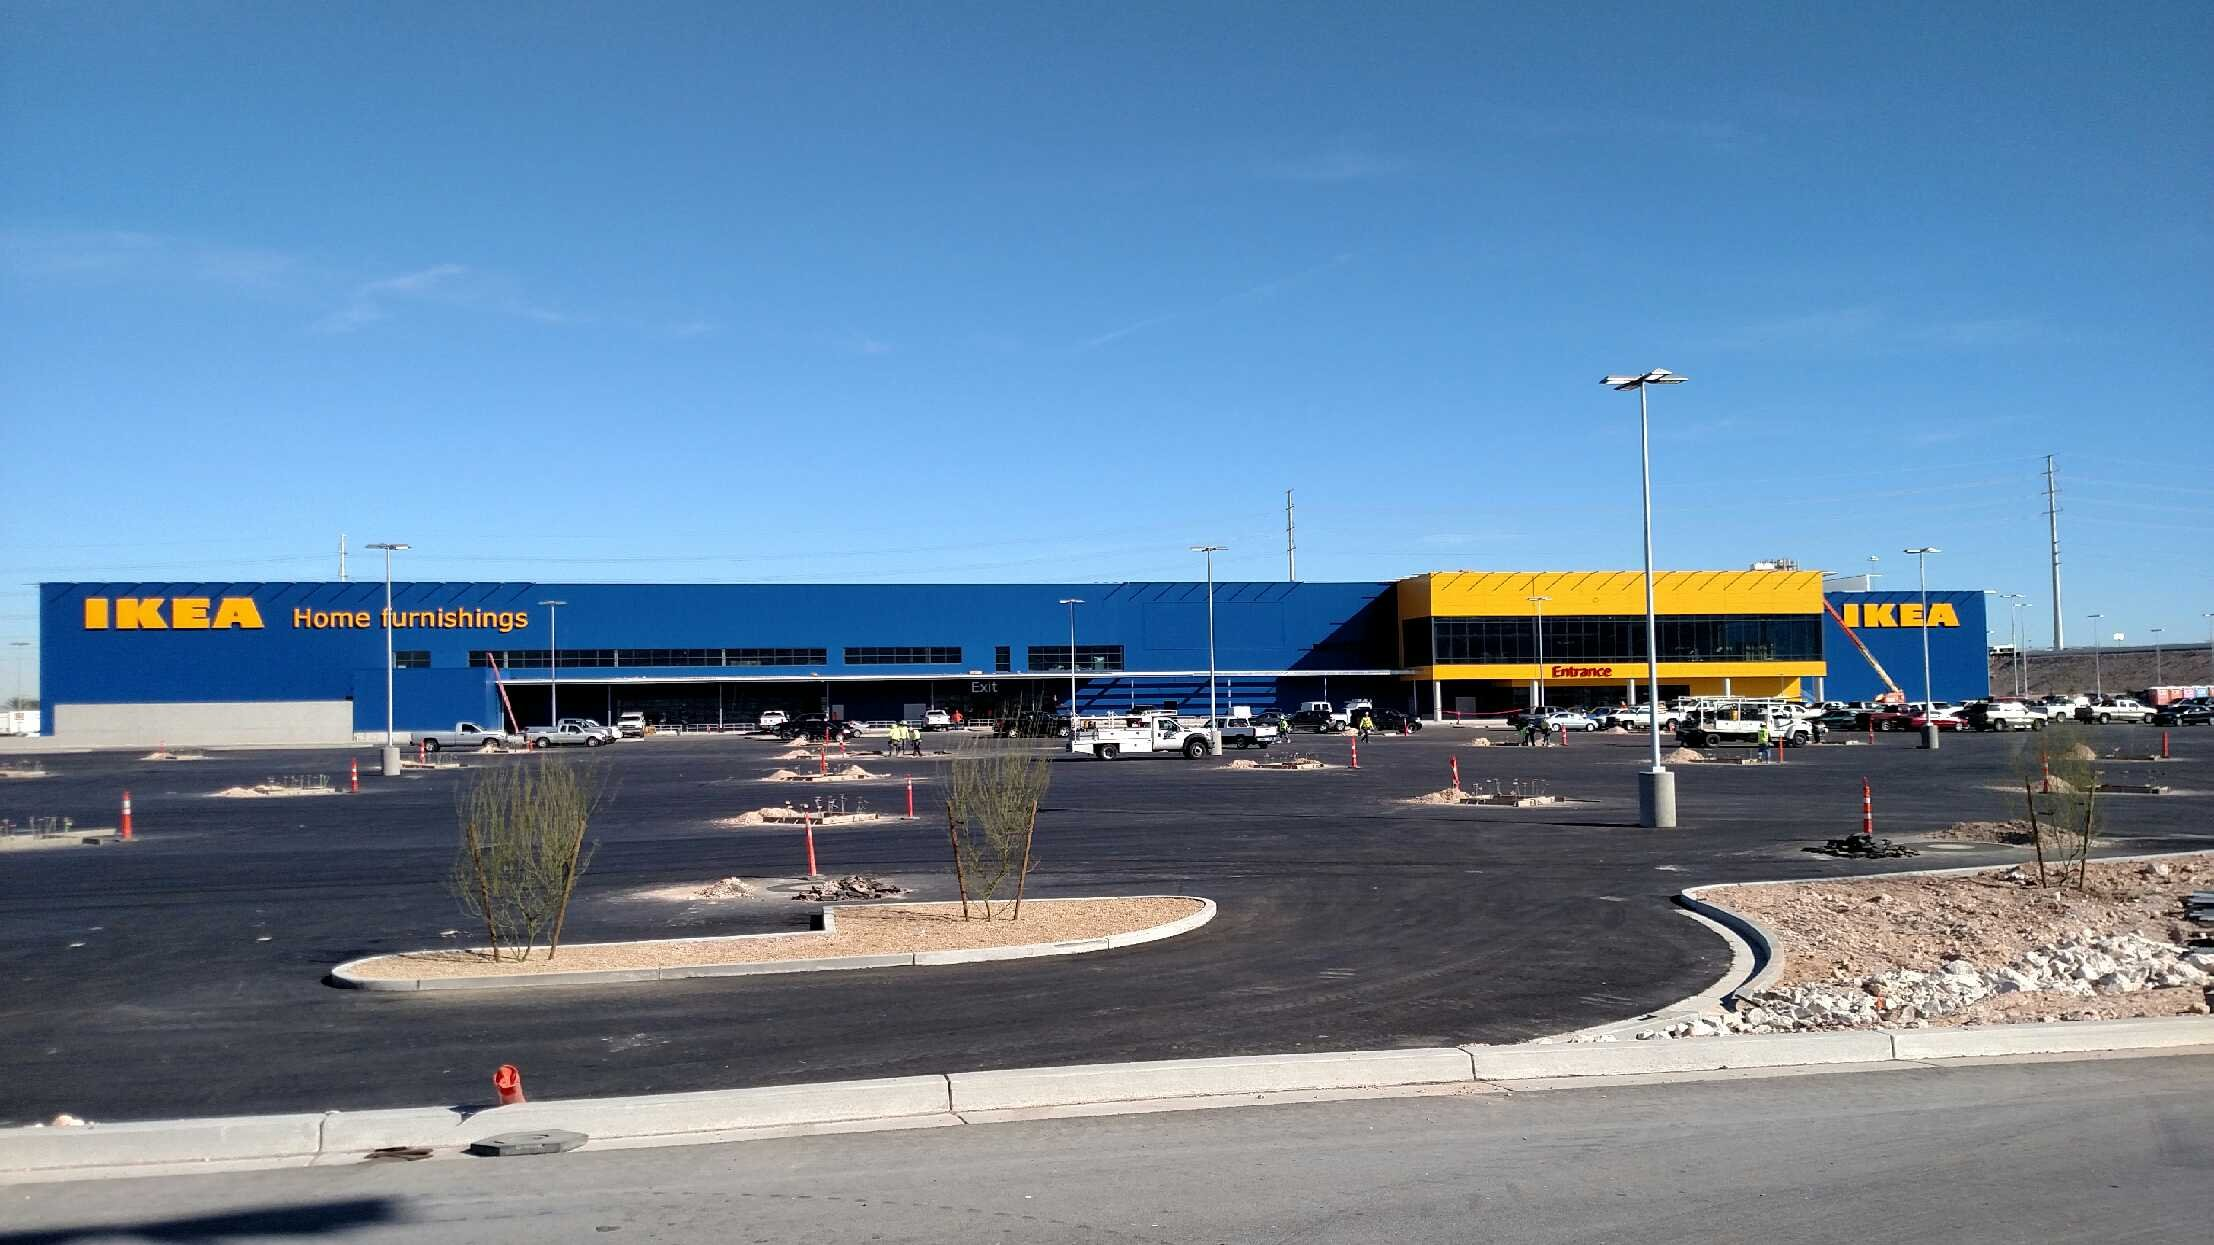 The Exterior Of The Las Vegasu0027 IKEA Location Near Durango Drive And The 215  Beltway